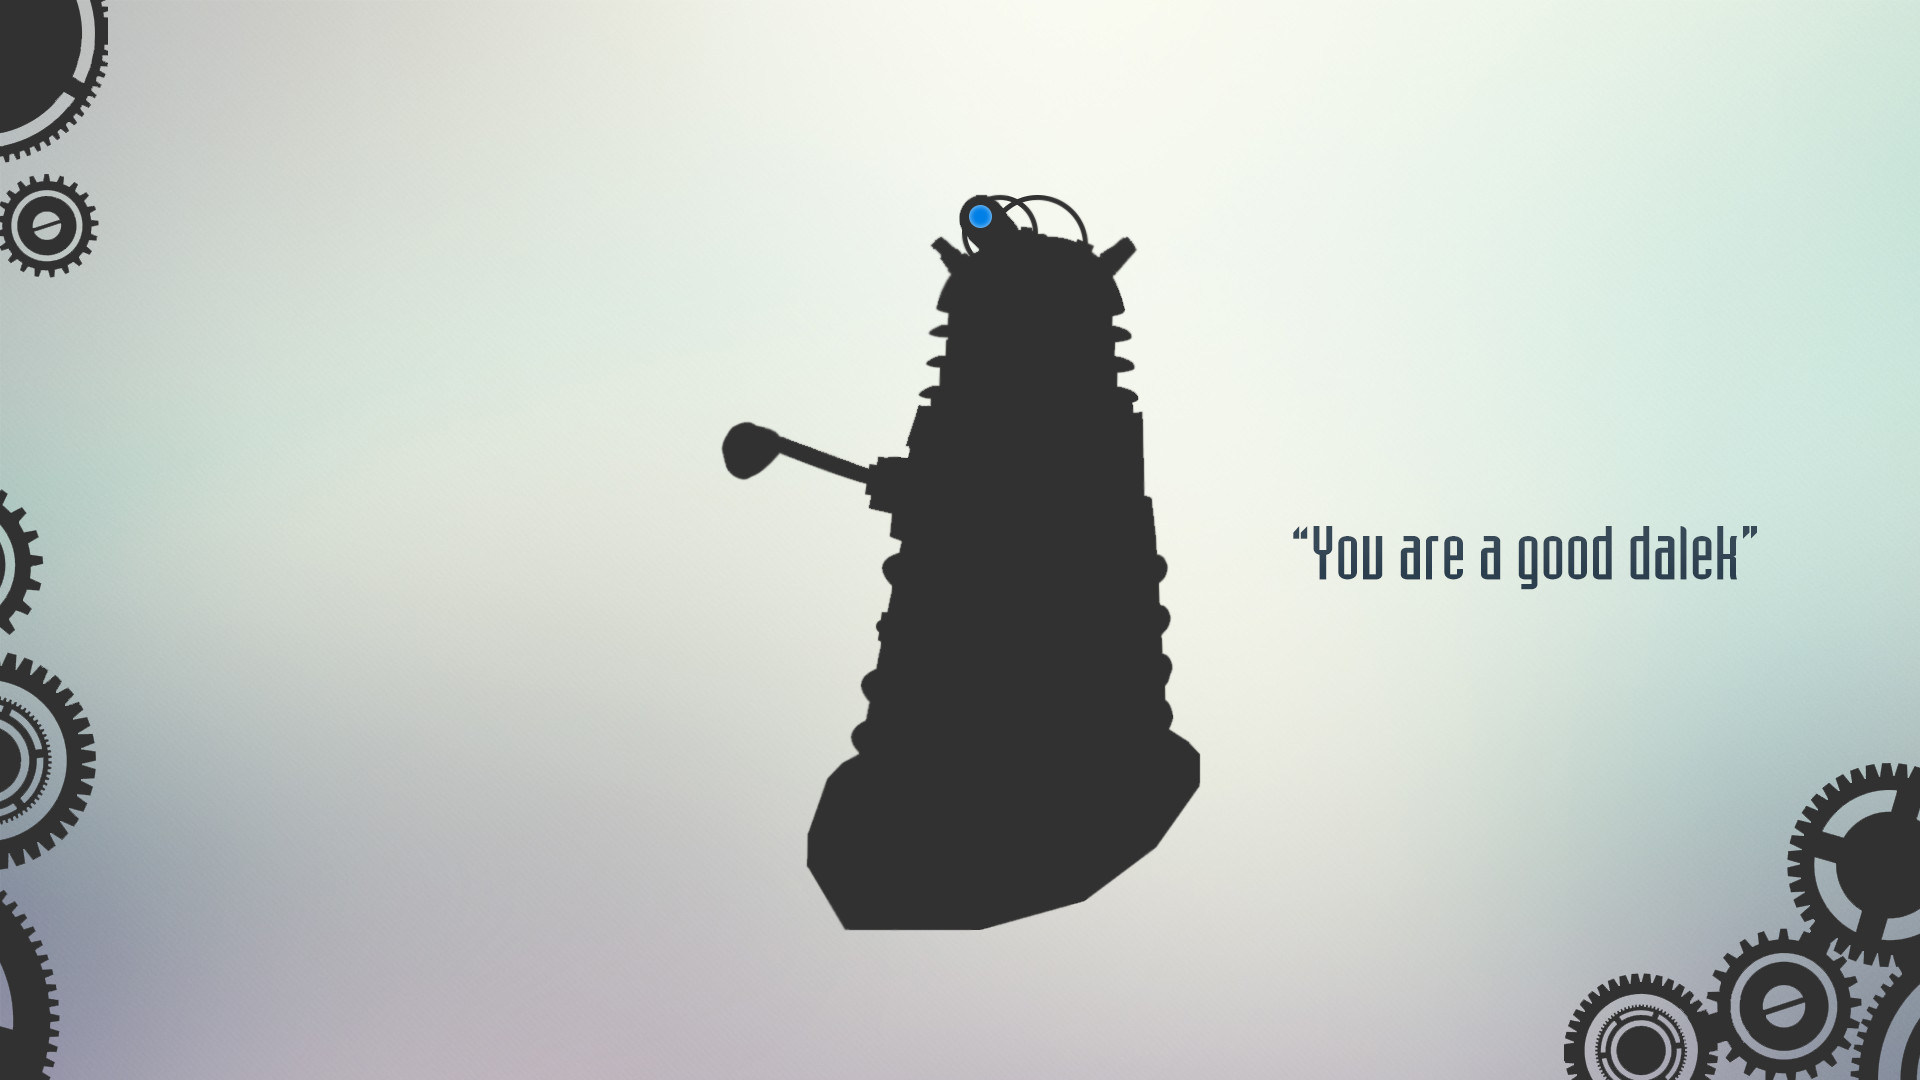 1920x1080 Doctor who - Dalek wallpaper - Enjoy!